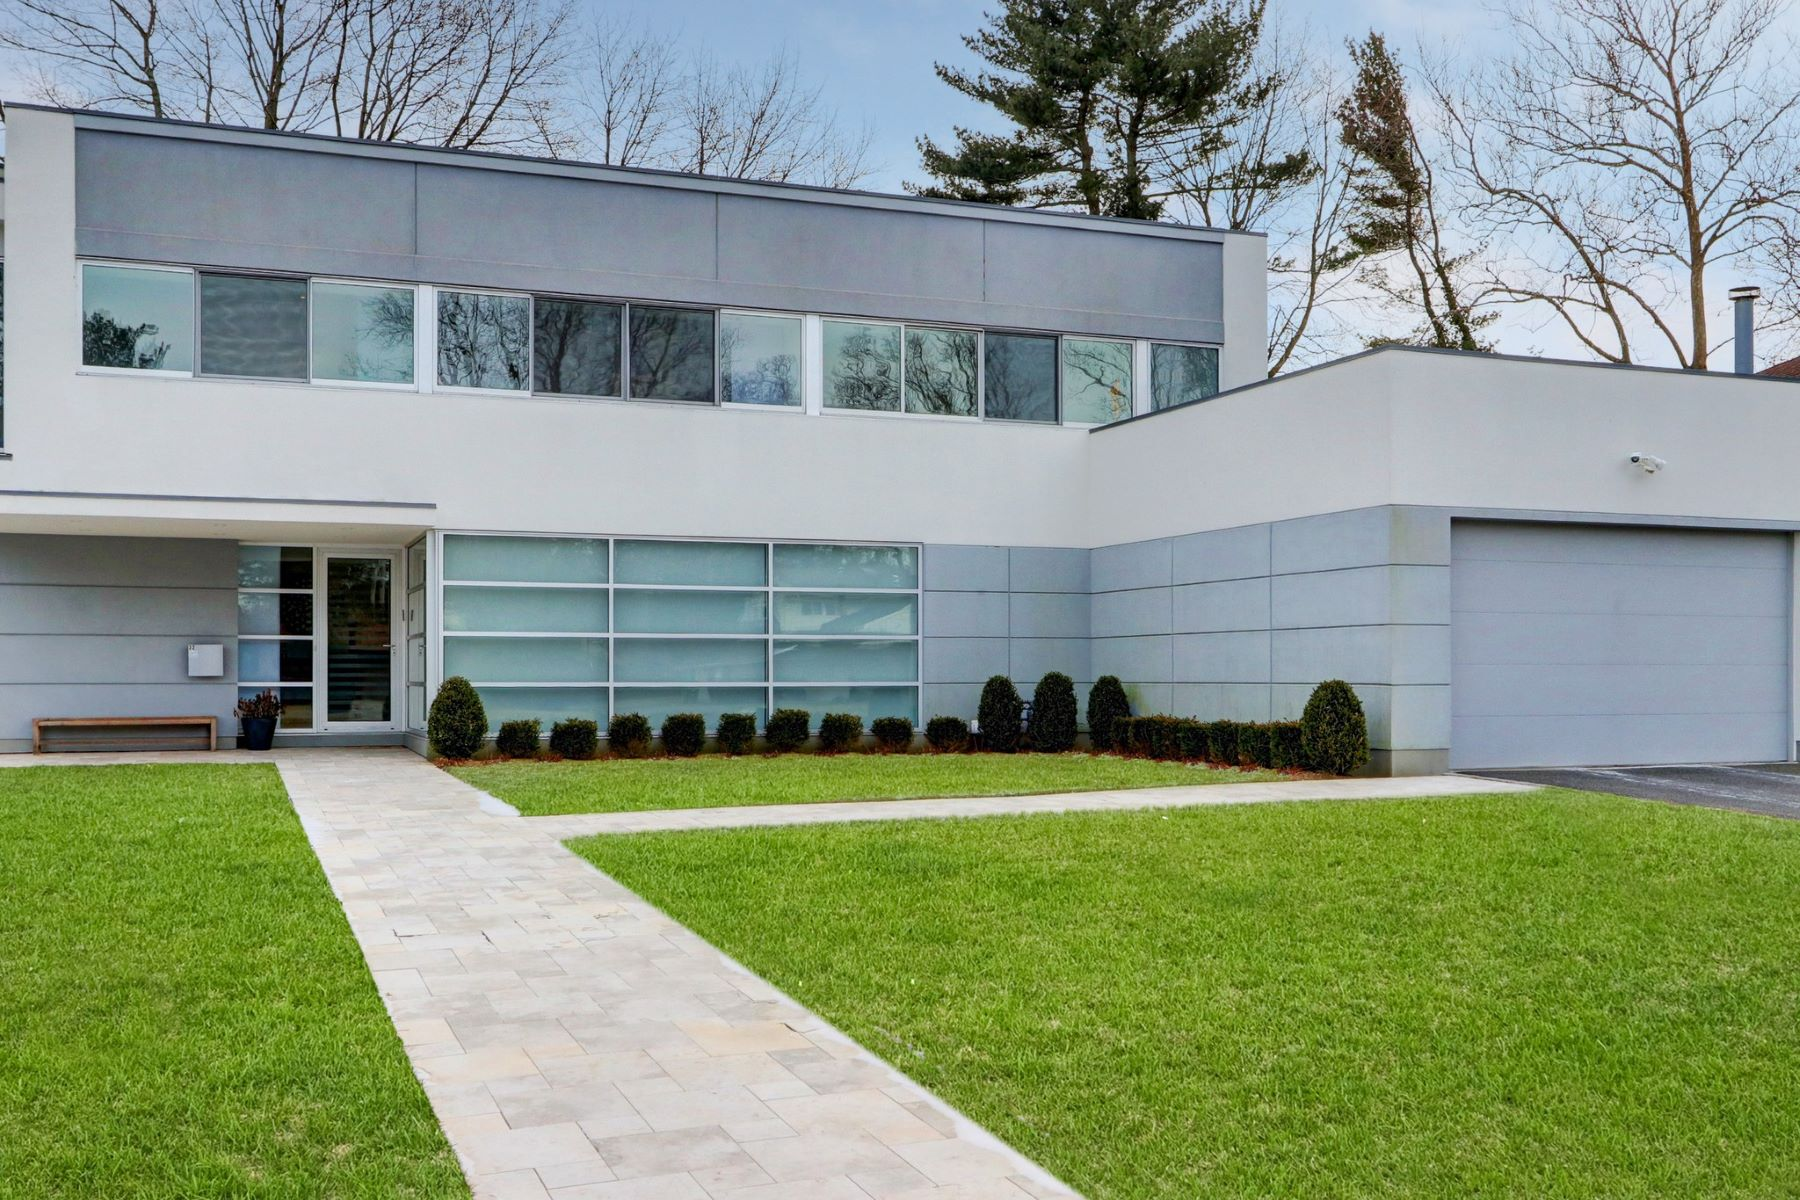 Single Family Homes for Active at Roslyn Heights 32 Pebble Ln Roslyn Heights, New York 11577 United States